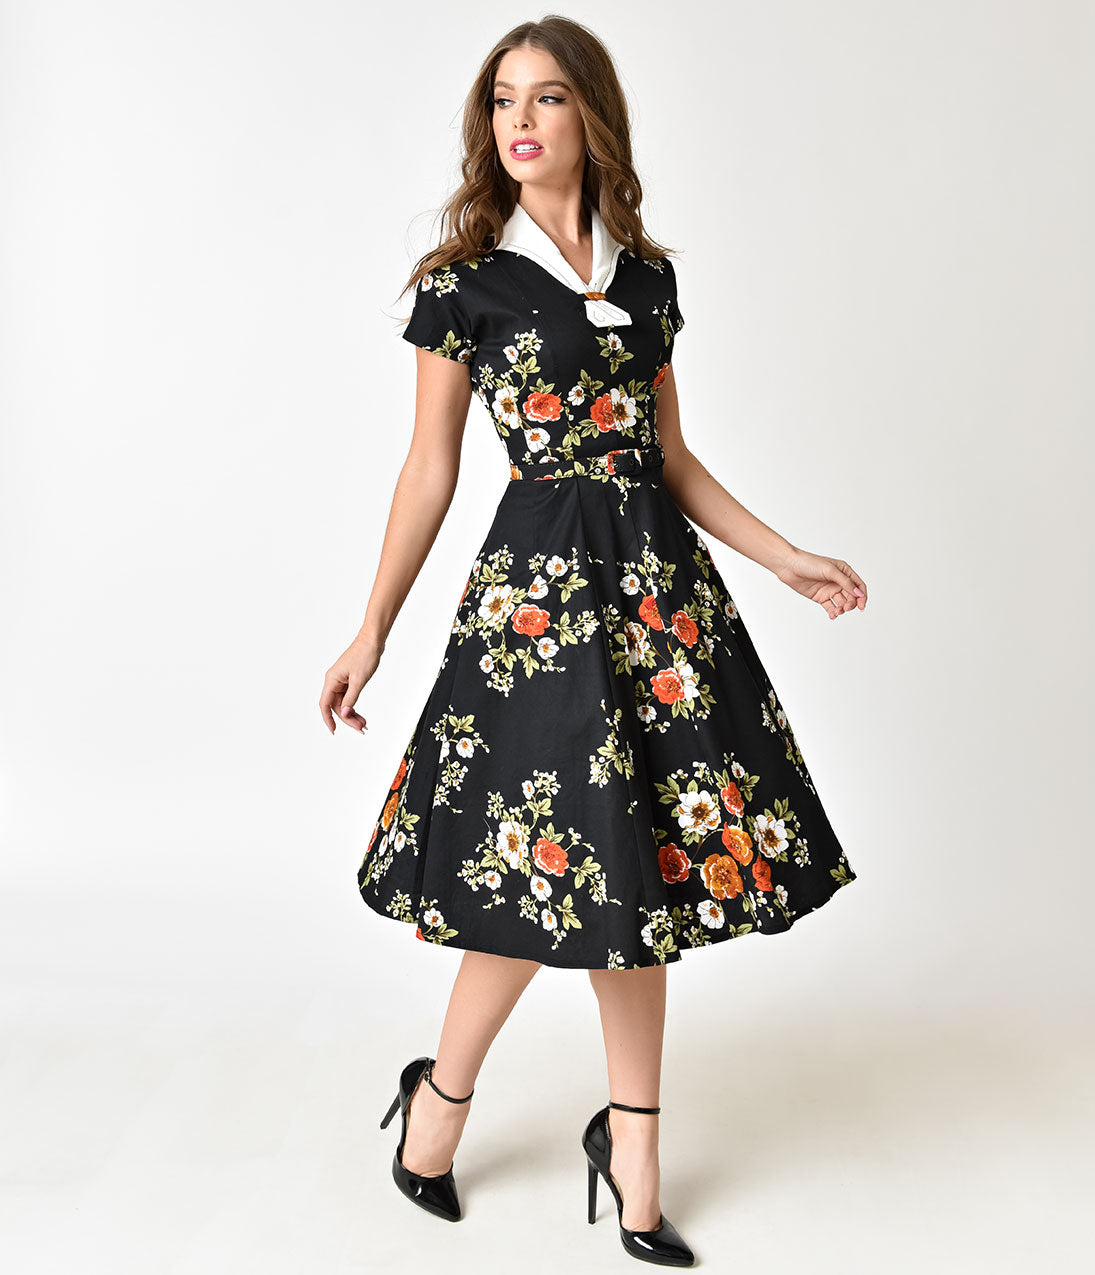 What Did Women Wear in the 1940s? 40s Fashion Trends 1940S Black Floral Short Sleeve Campbell Swing Dress $98.00 AT vintagedancer.com